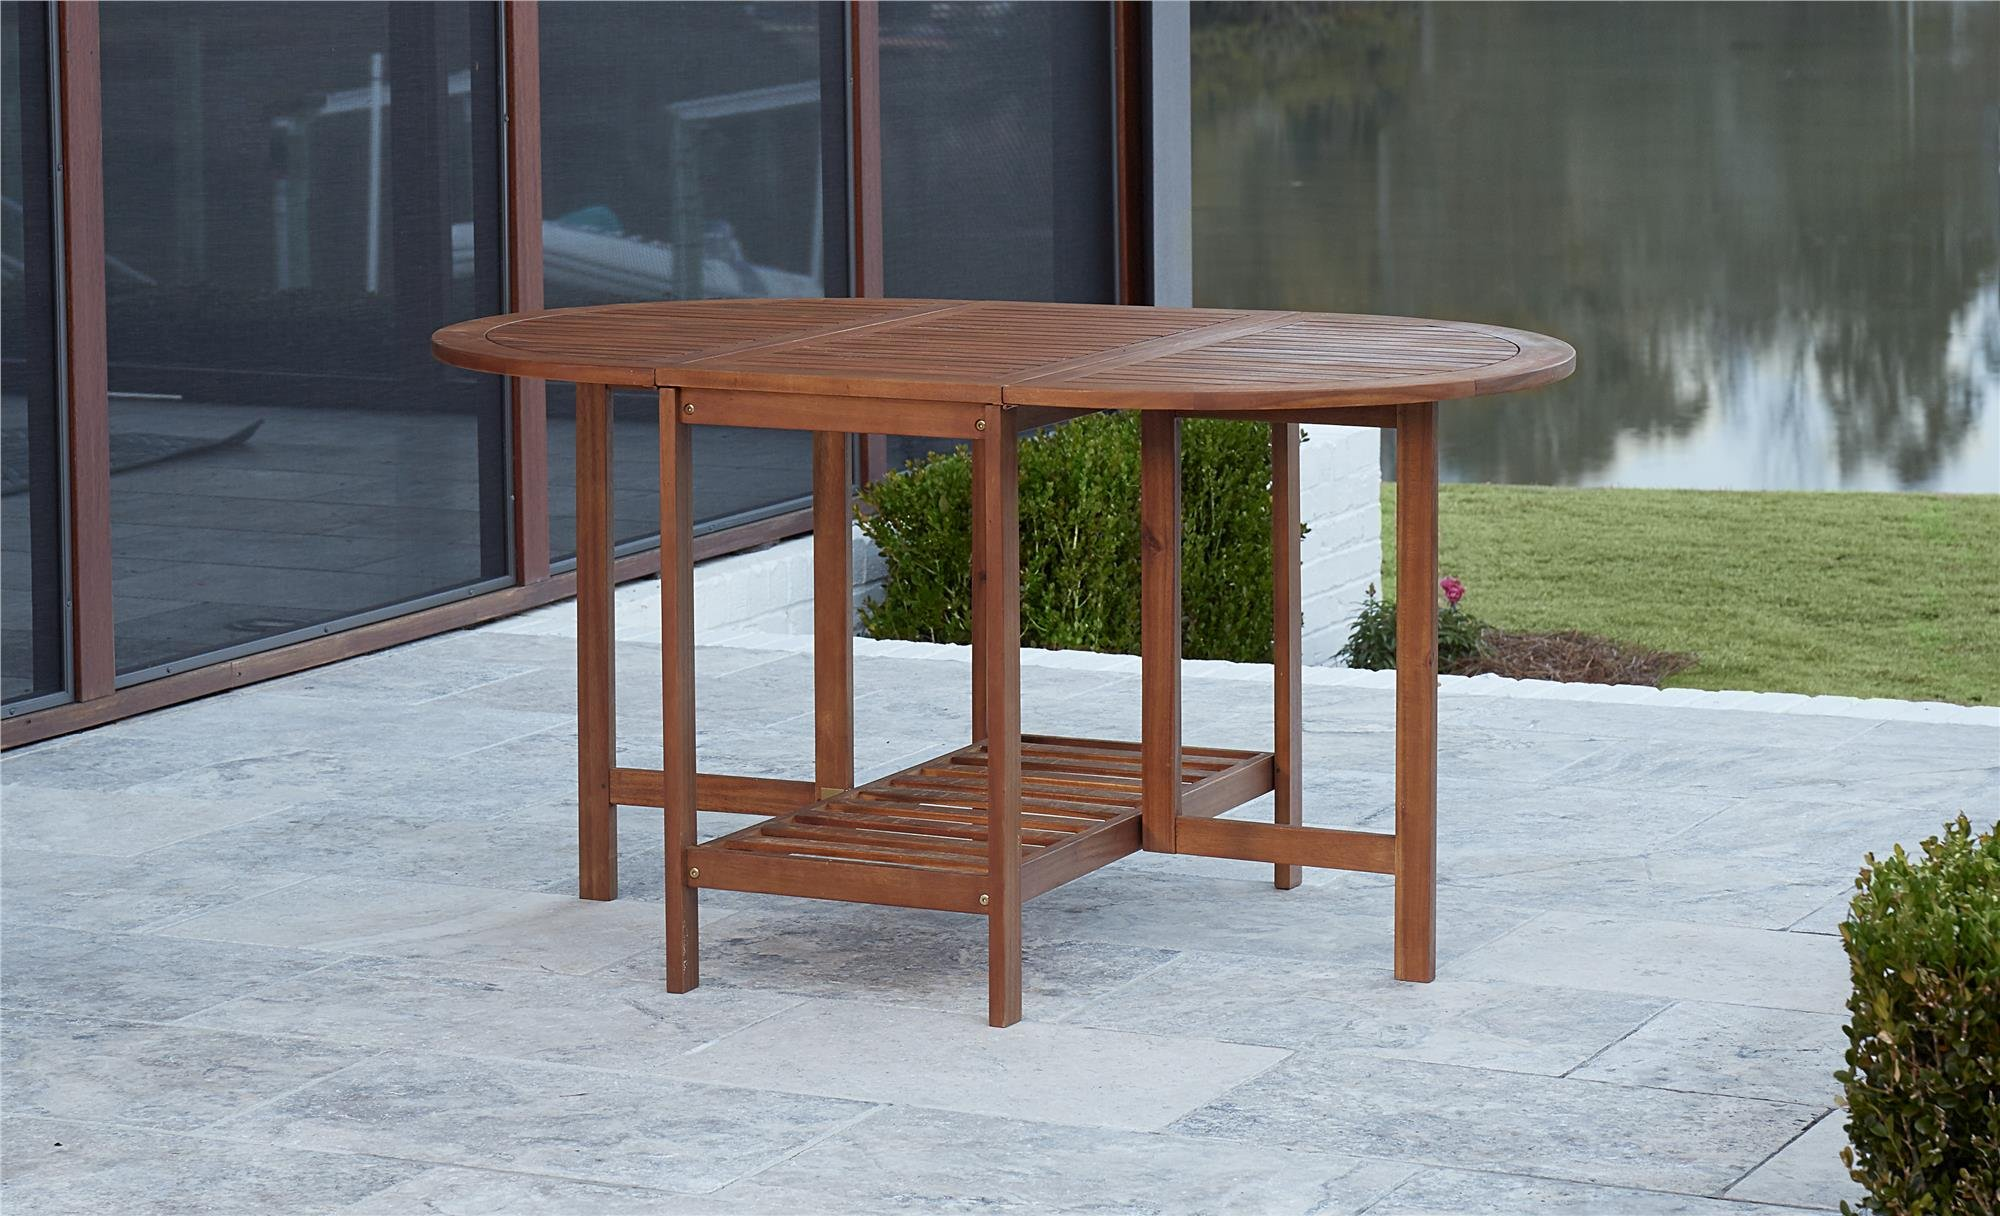 COSCO Outdoor Living Acacia Wood Folding Drop Leaf Patio Dining Table with Chair Storage, Brown